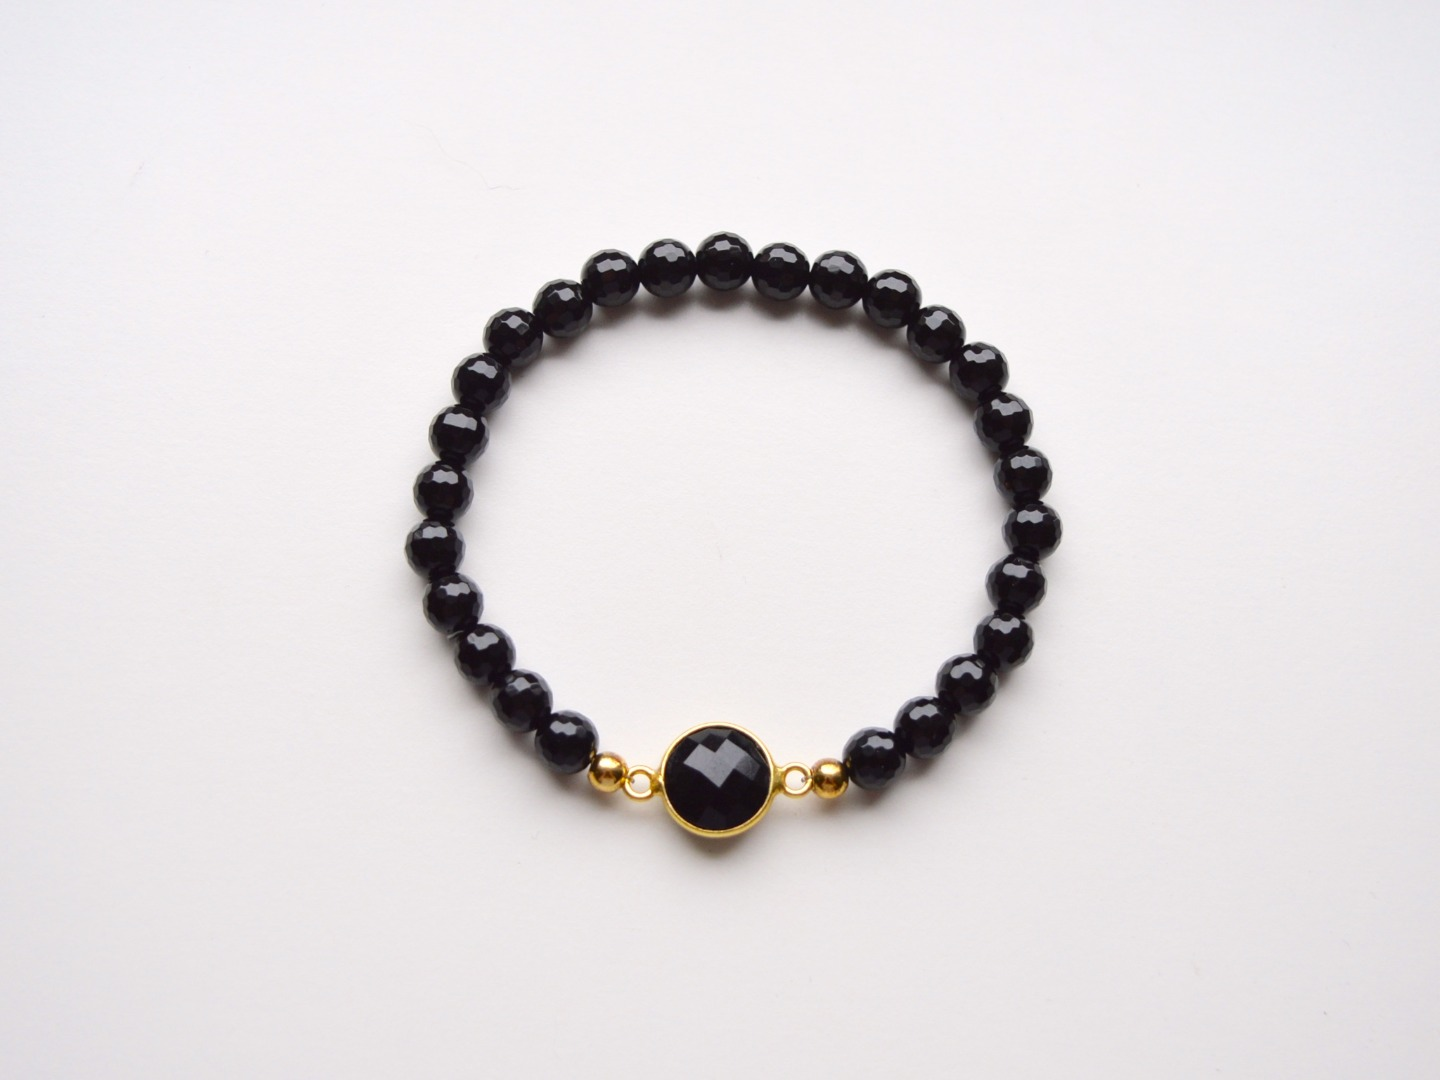 New in Black Onyx Armband vergoldet